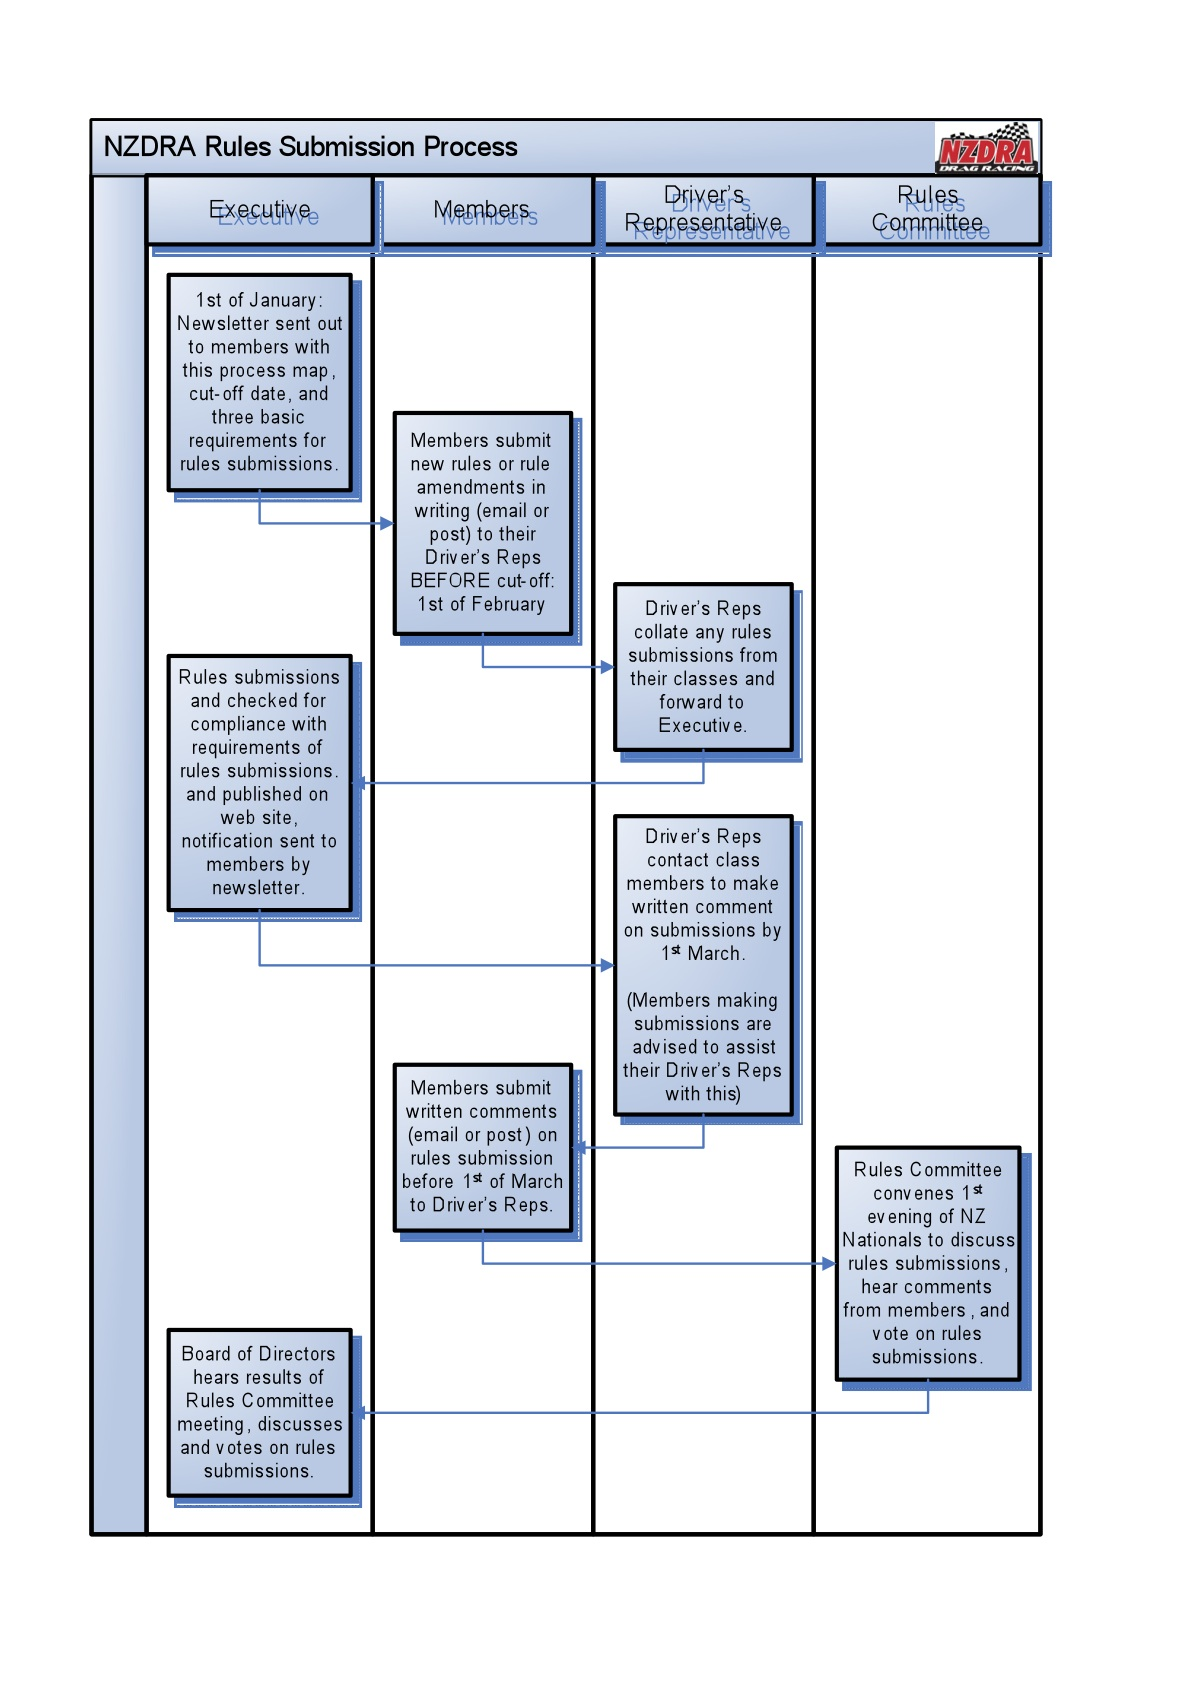 Rules Submission Process Map